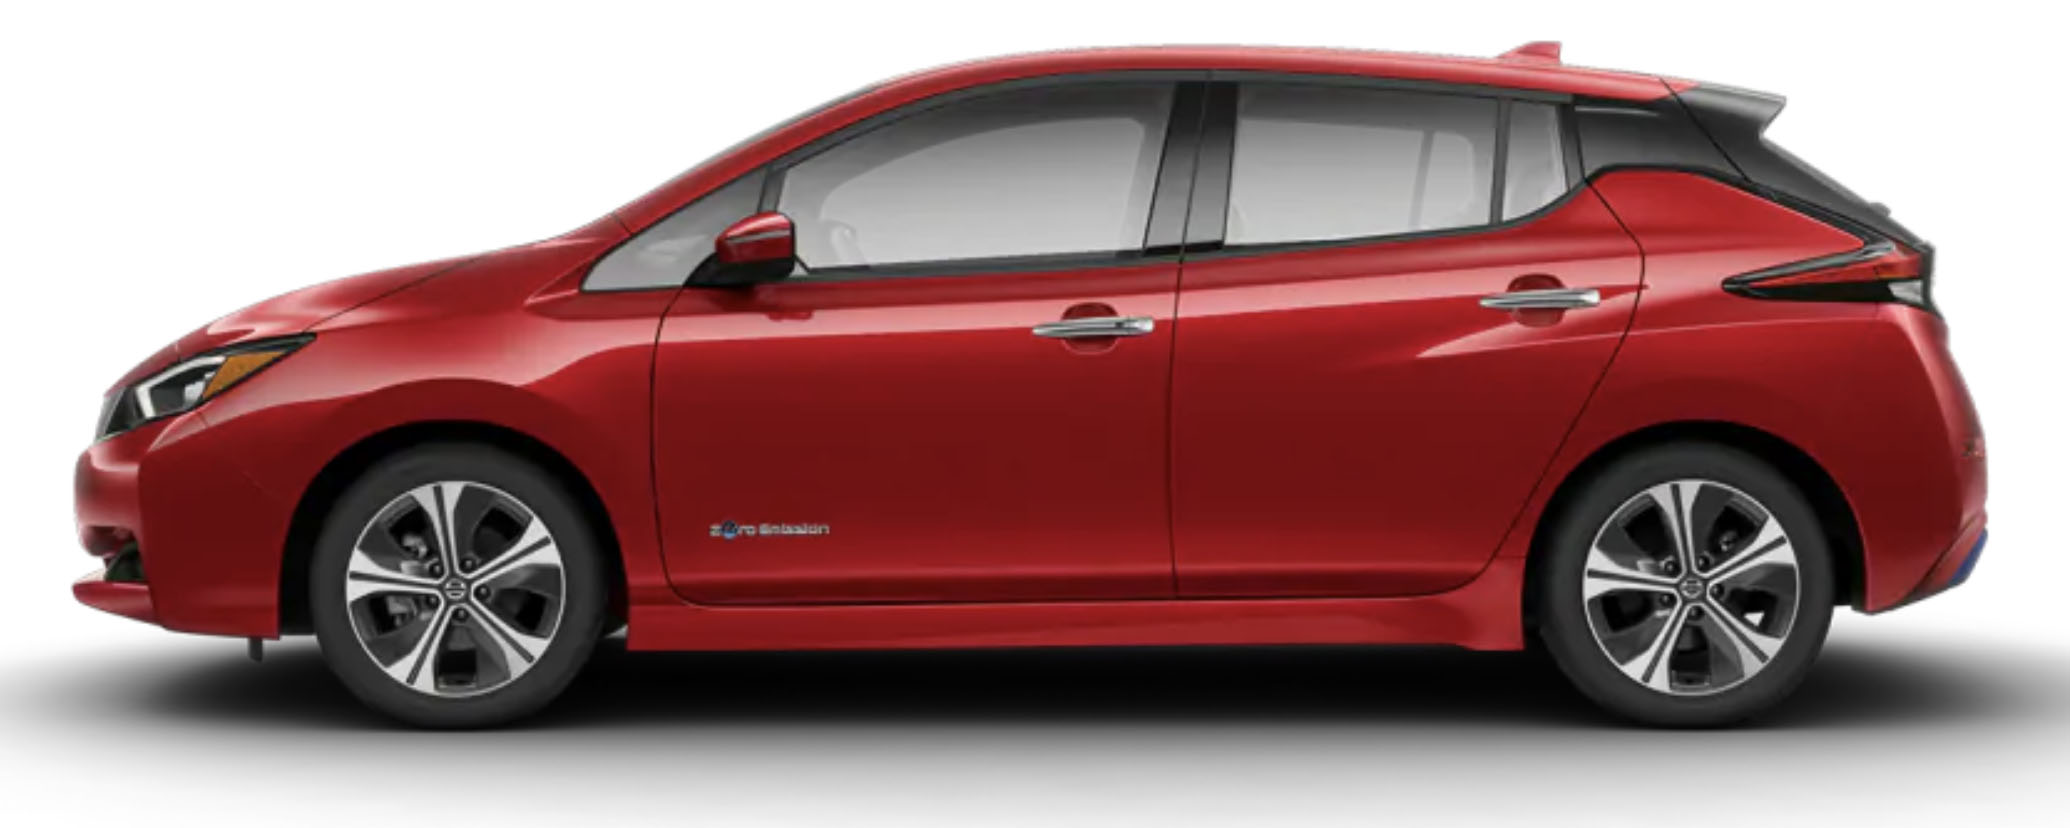 Side-view of 2019 Nissan Leaf electric car in scarlet ember tintcoat finish against a white background.